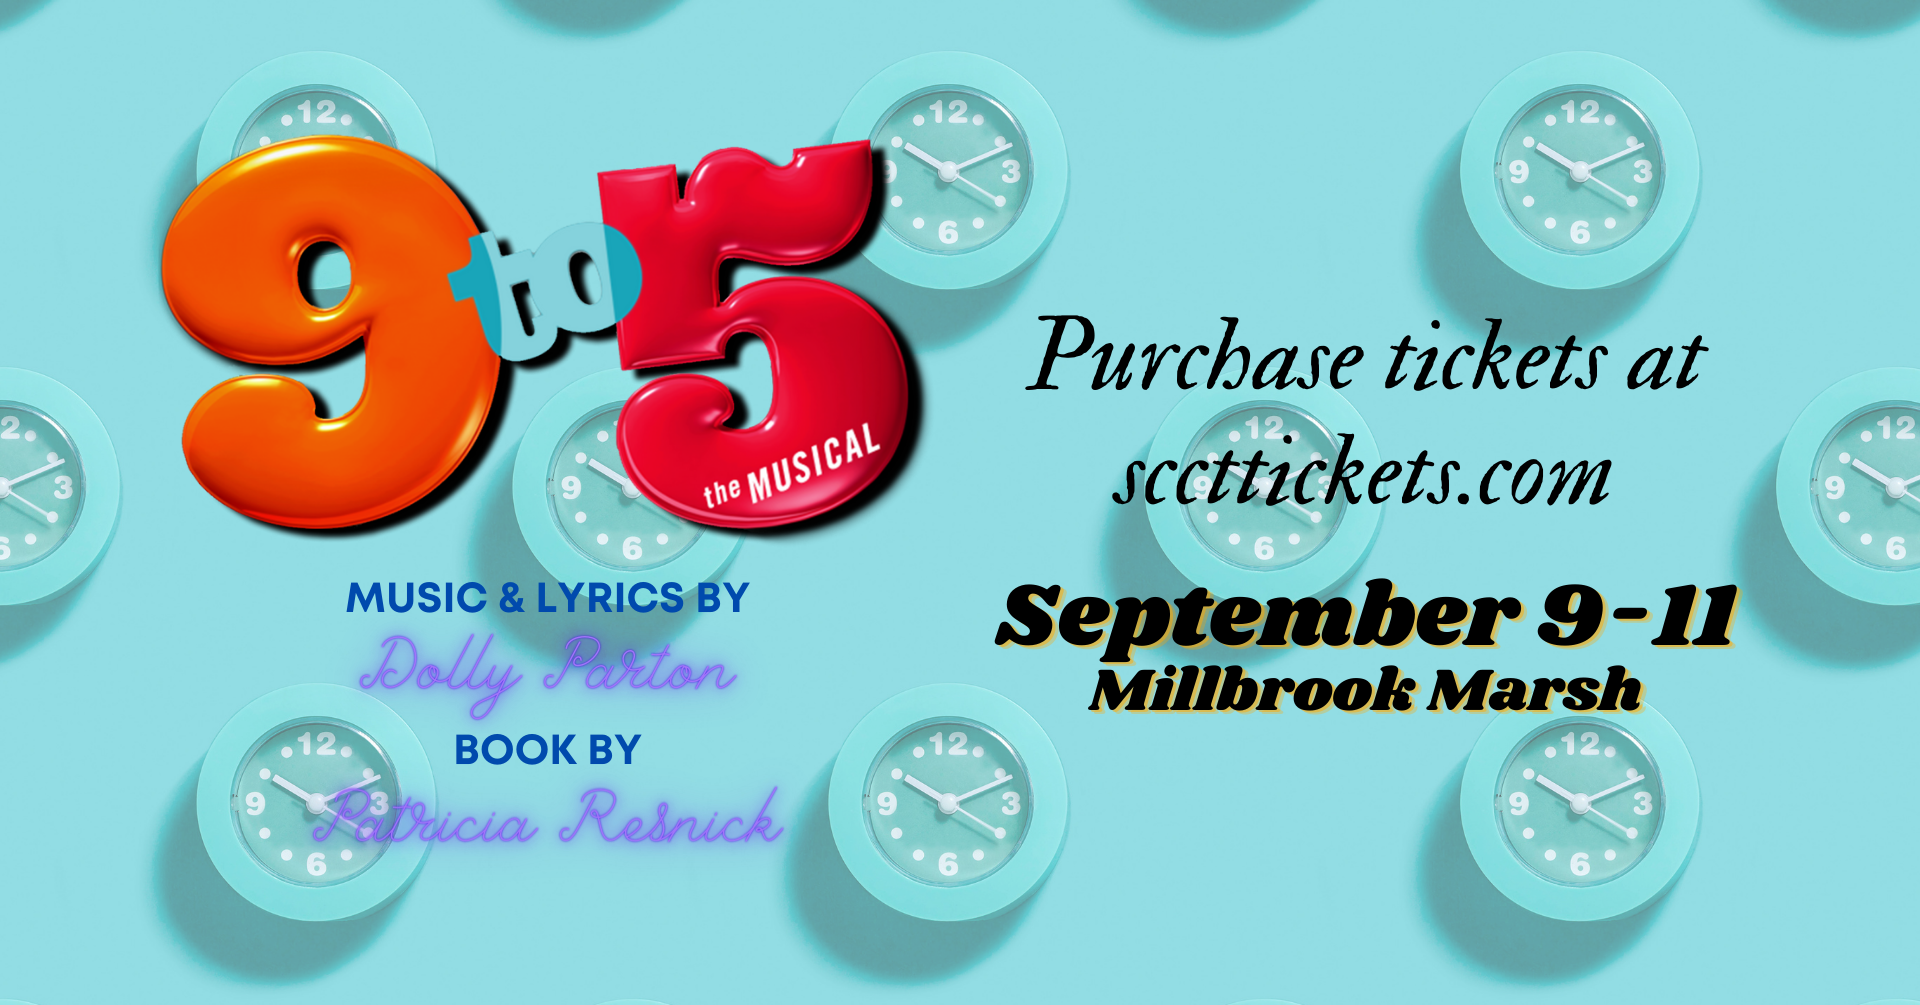 Copy of 9 to 5 Ticket Image